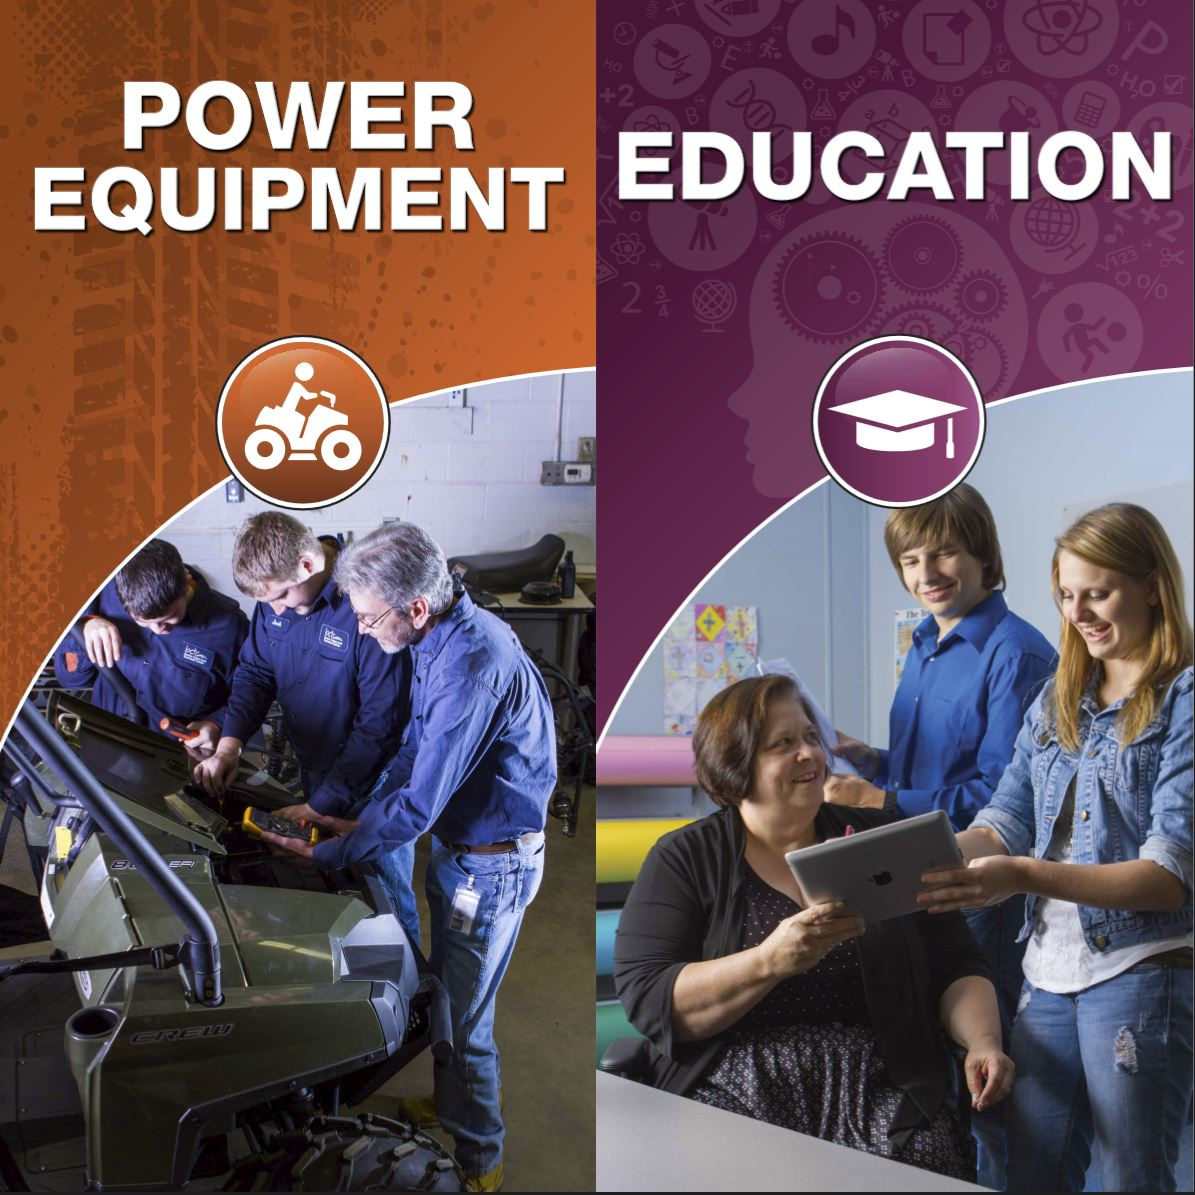 Advertising for Boone County Technical Center